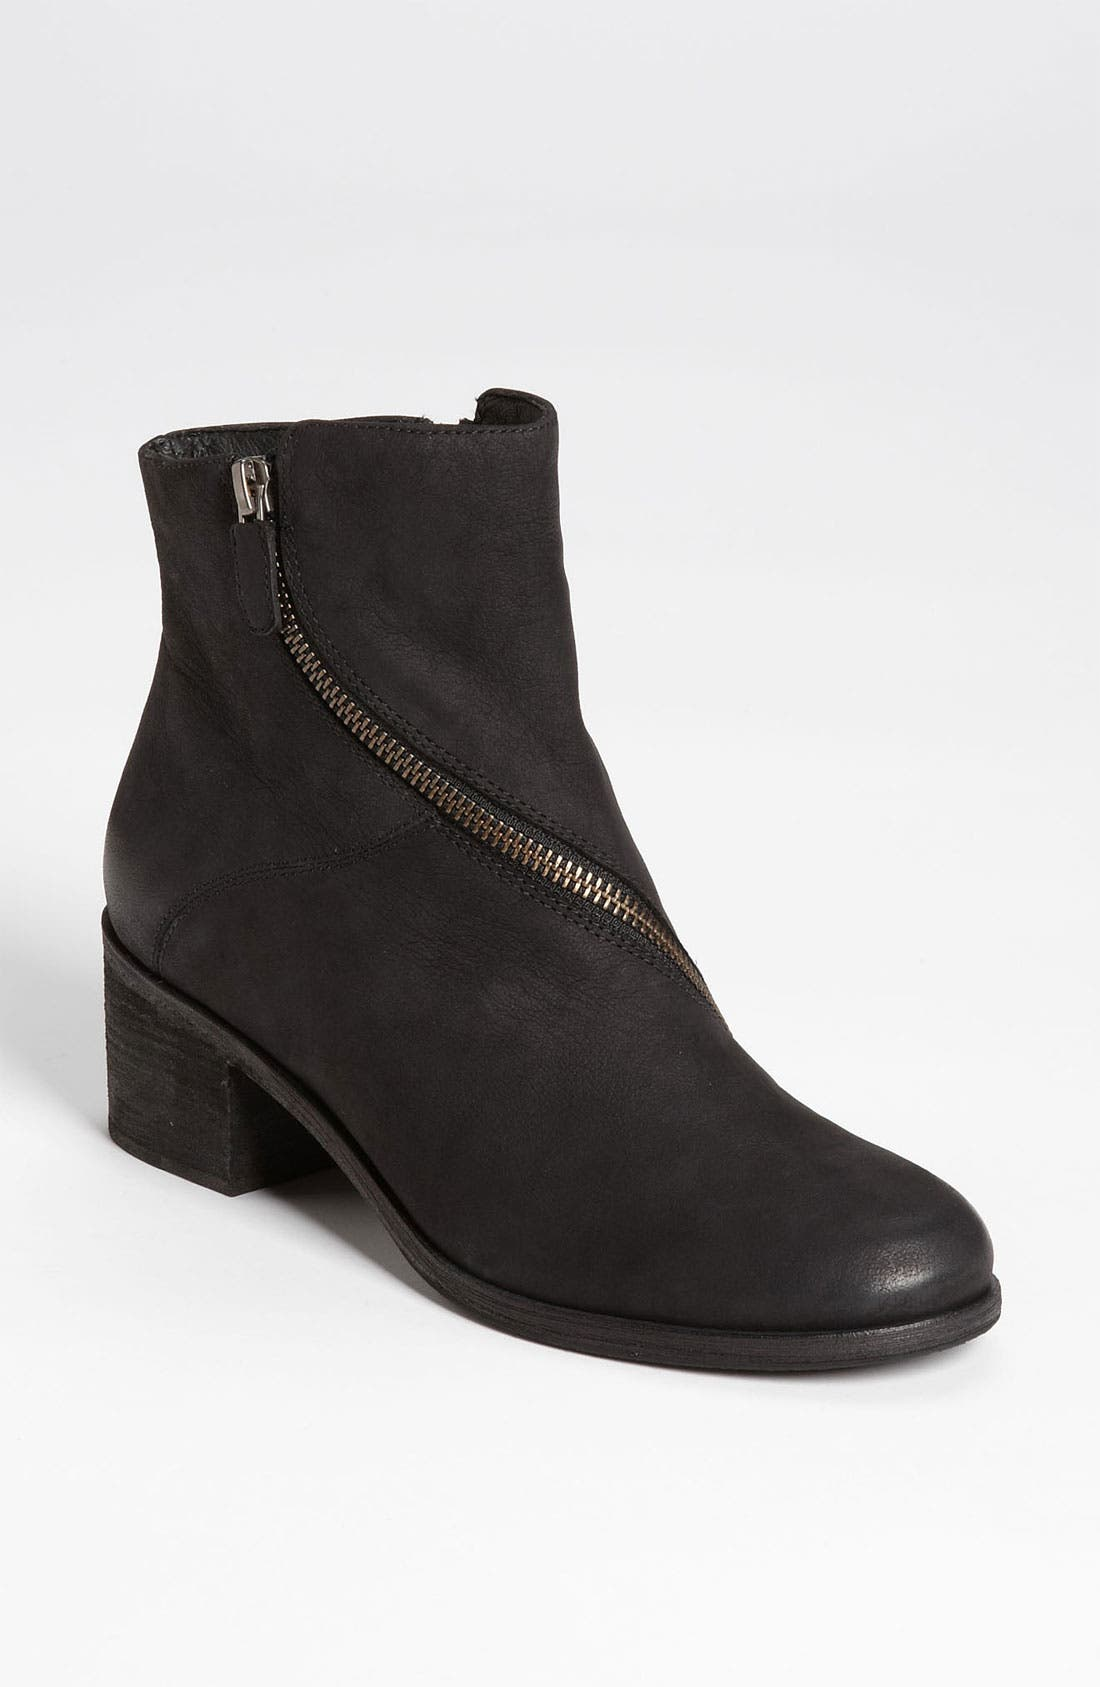 Alternate Image 1 Selected - Eileen Fisher 'Mate' Boot